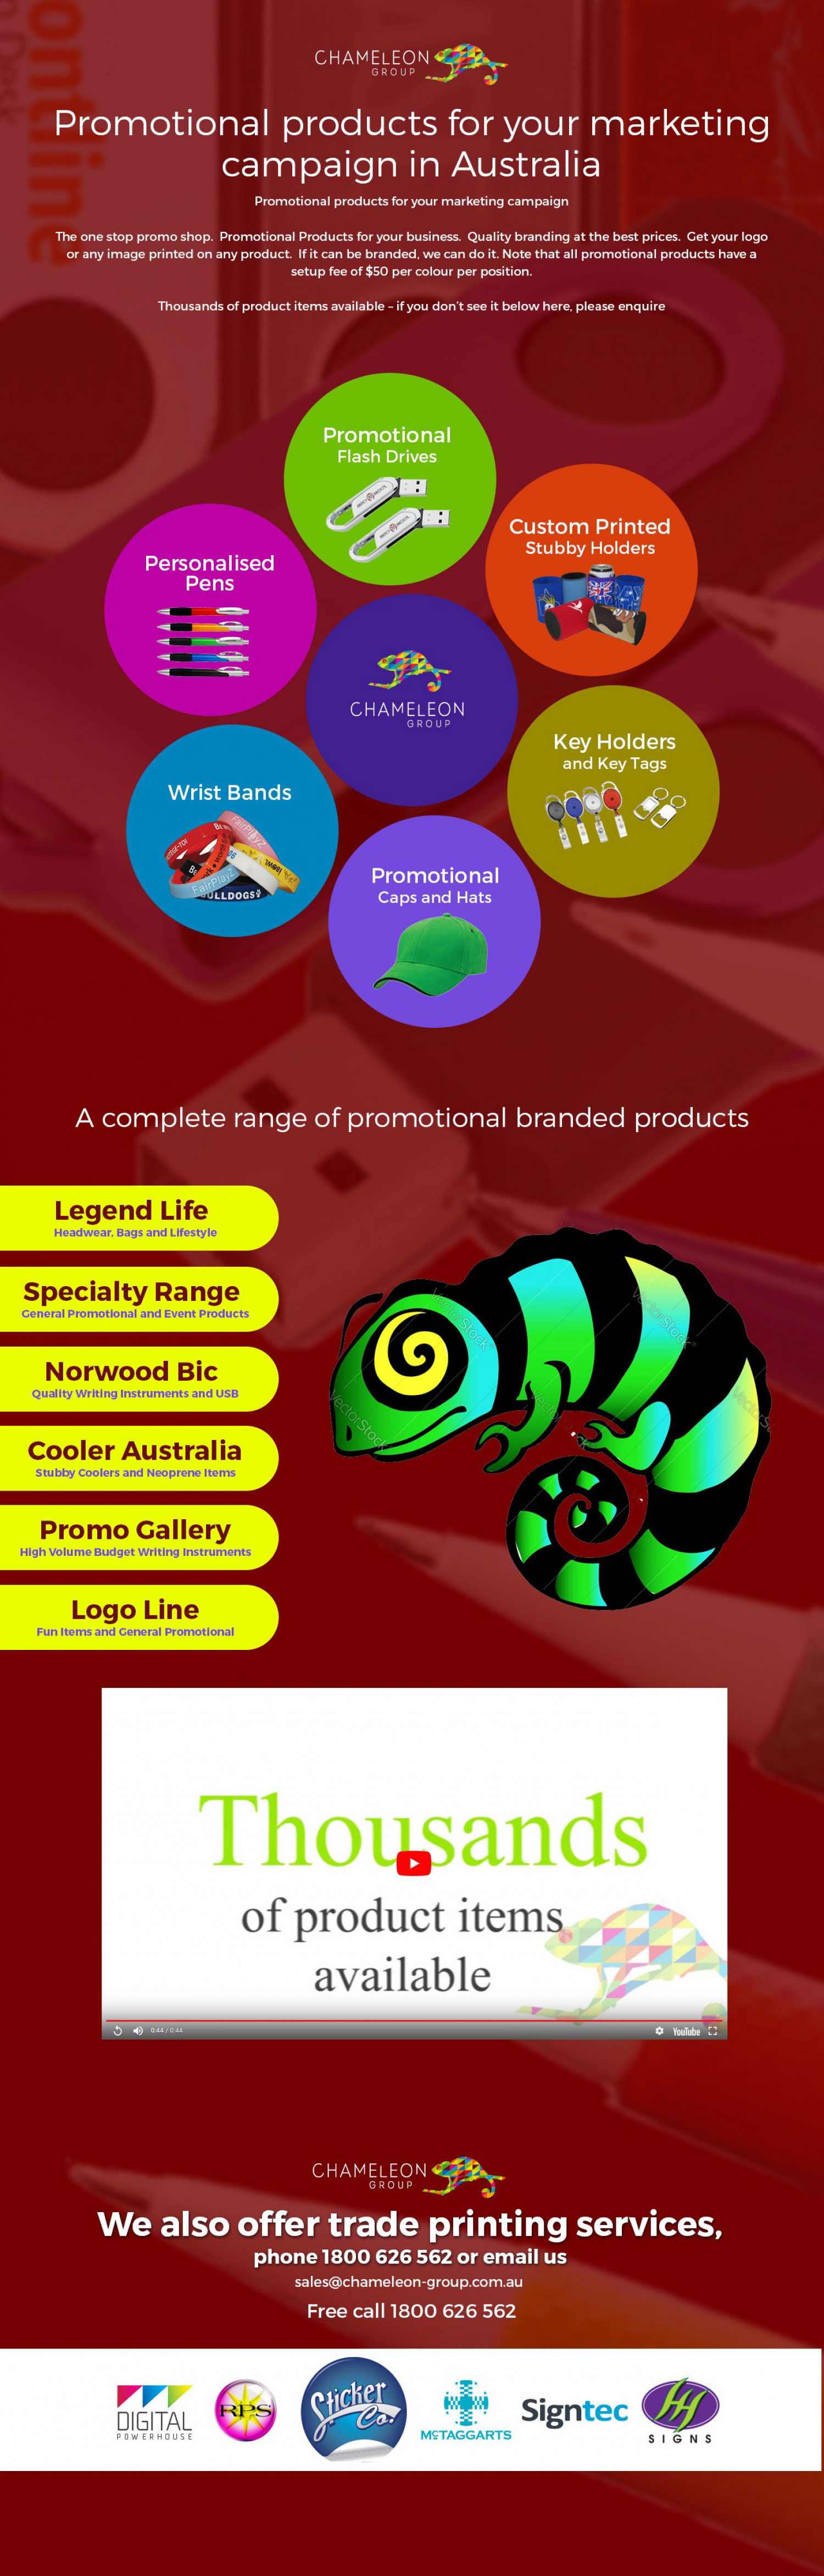 Promotional products for your marketing campaign in Australia Infographic